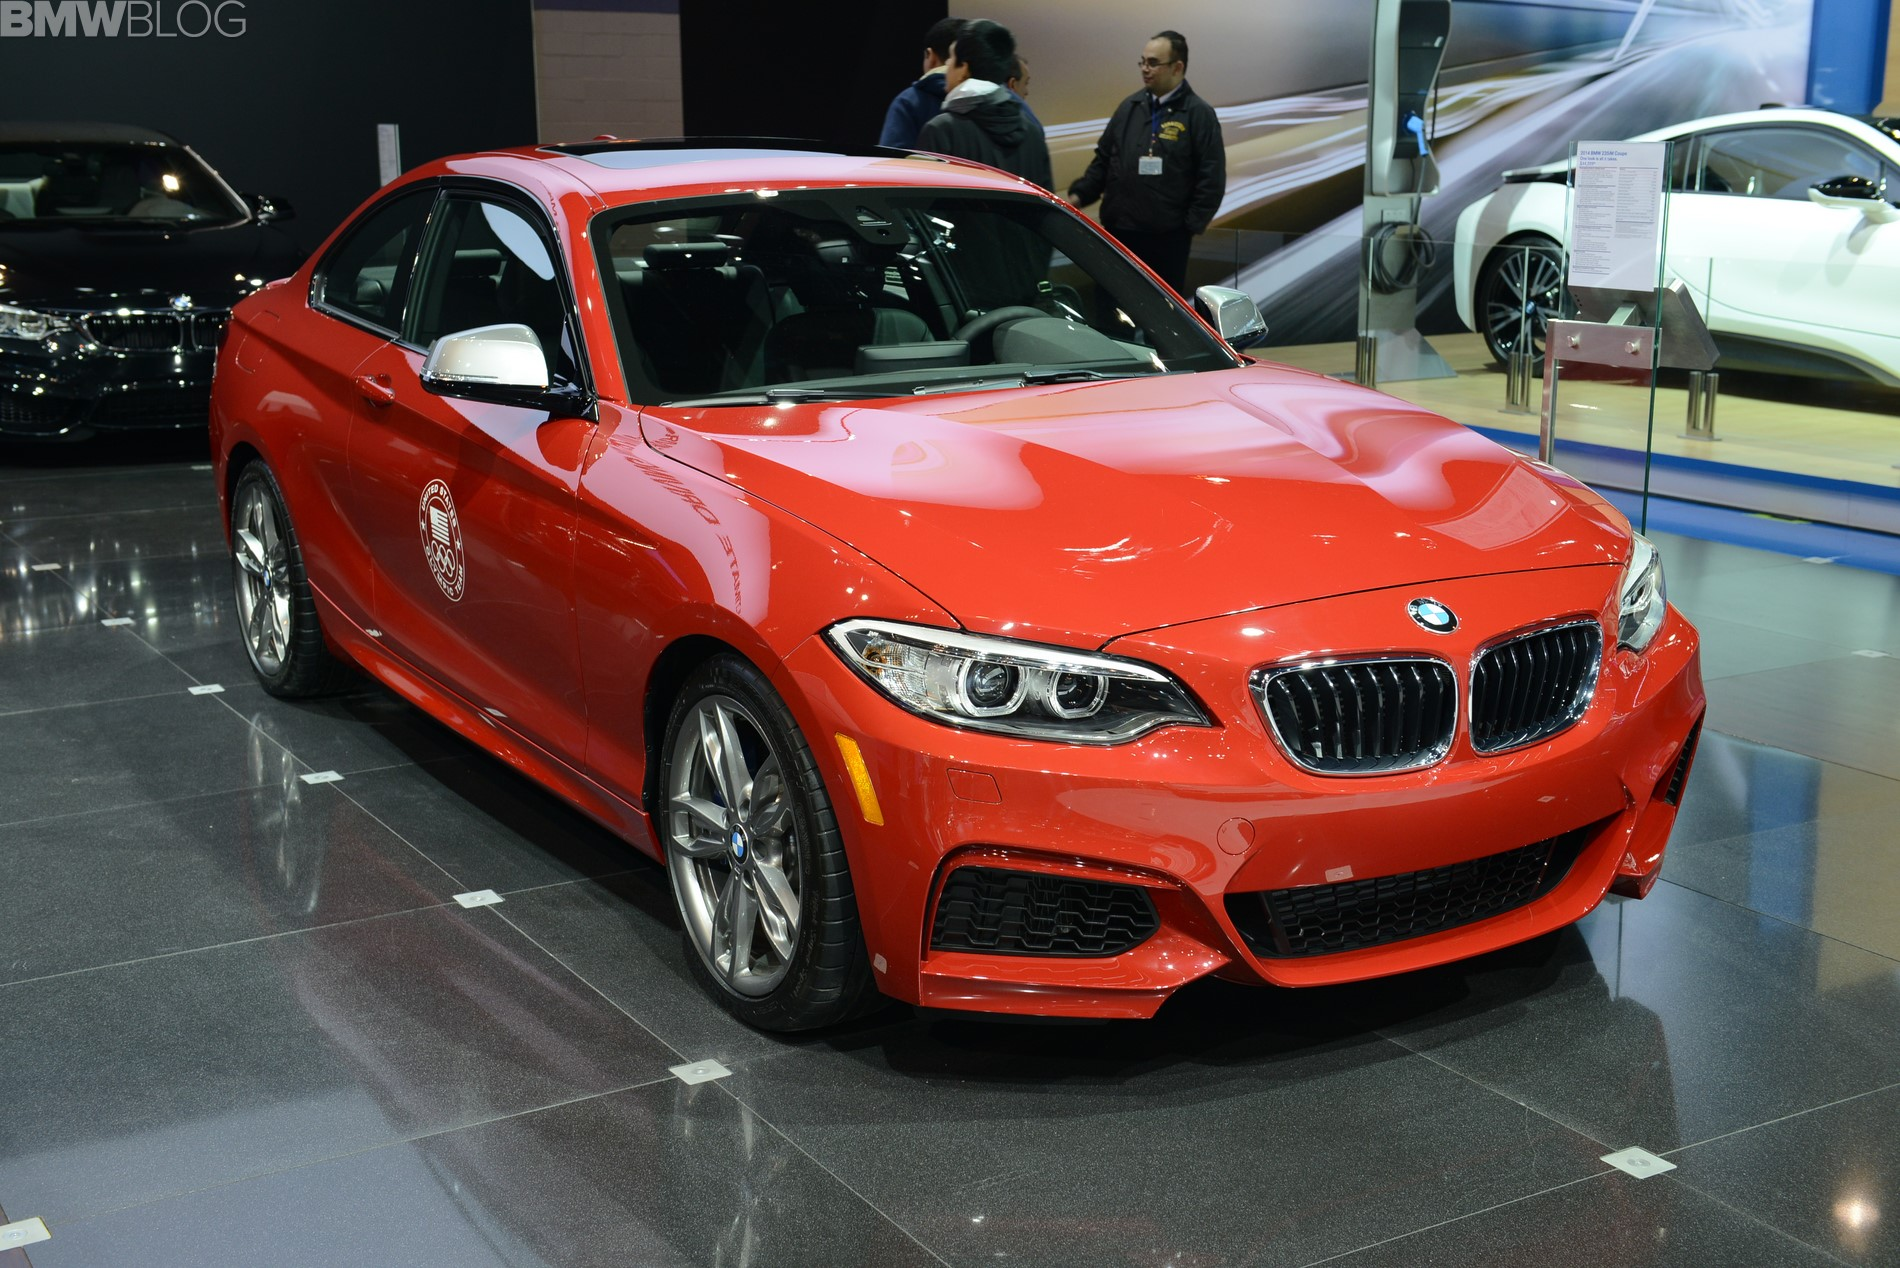 2015 bmw m235i chicago auto show 02